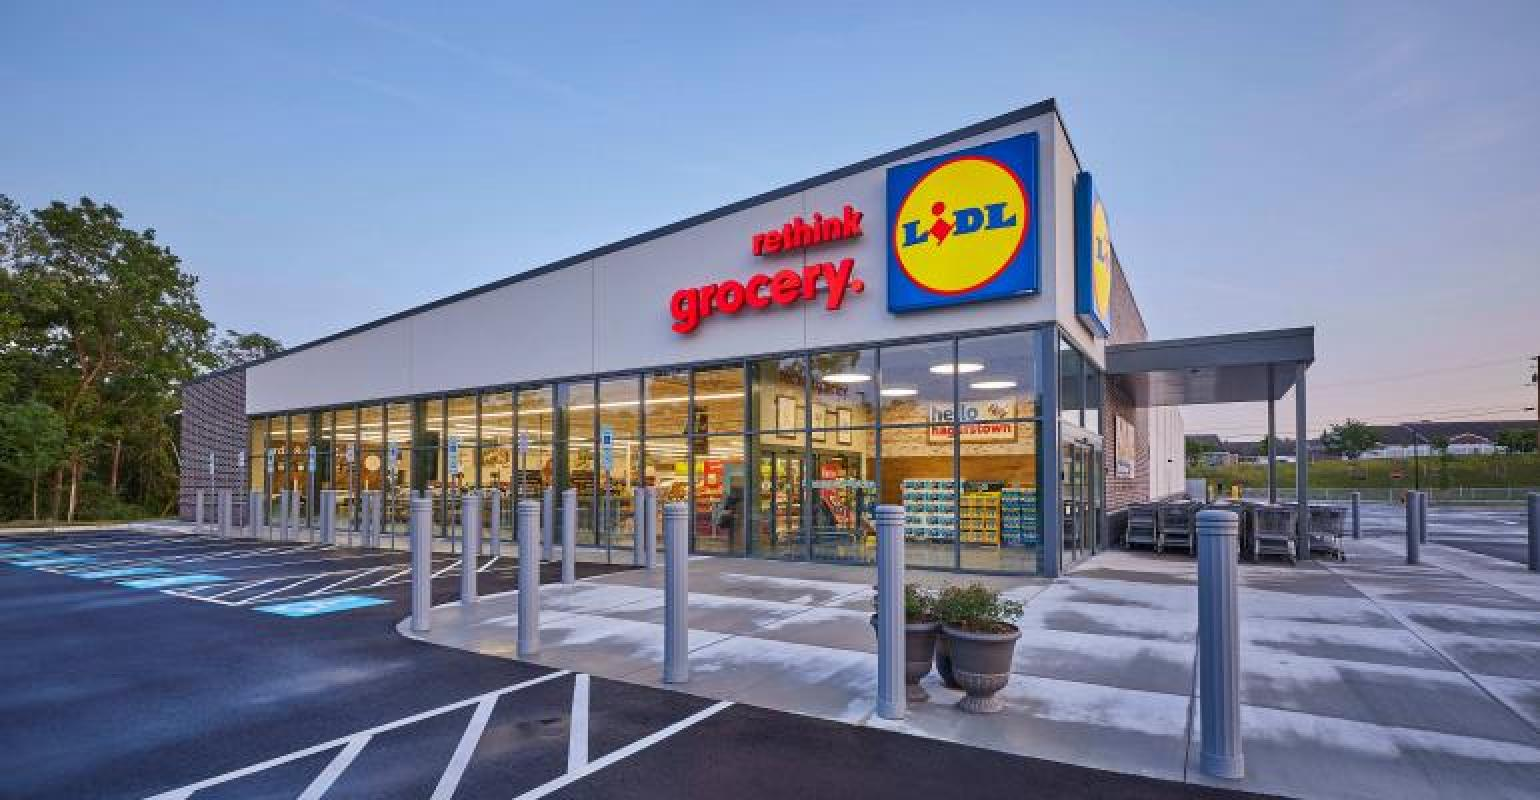 Lidl readies second wave of Long Island stores | Supermarket News